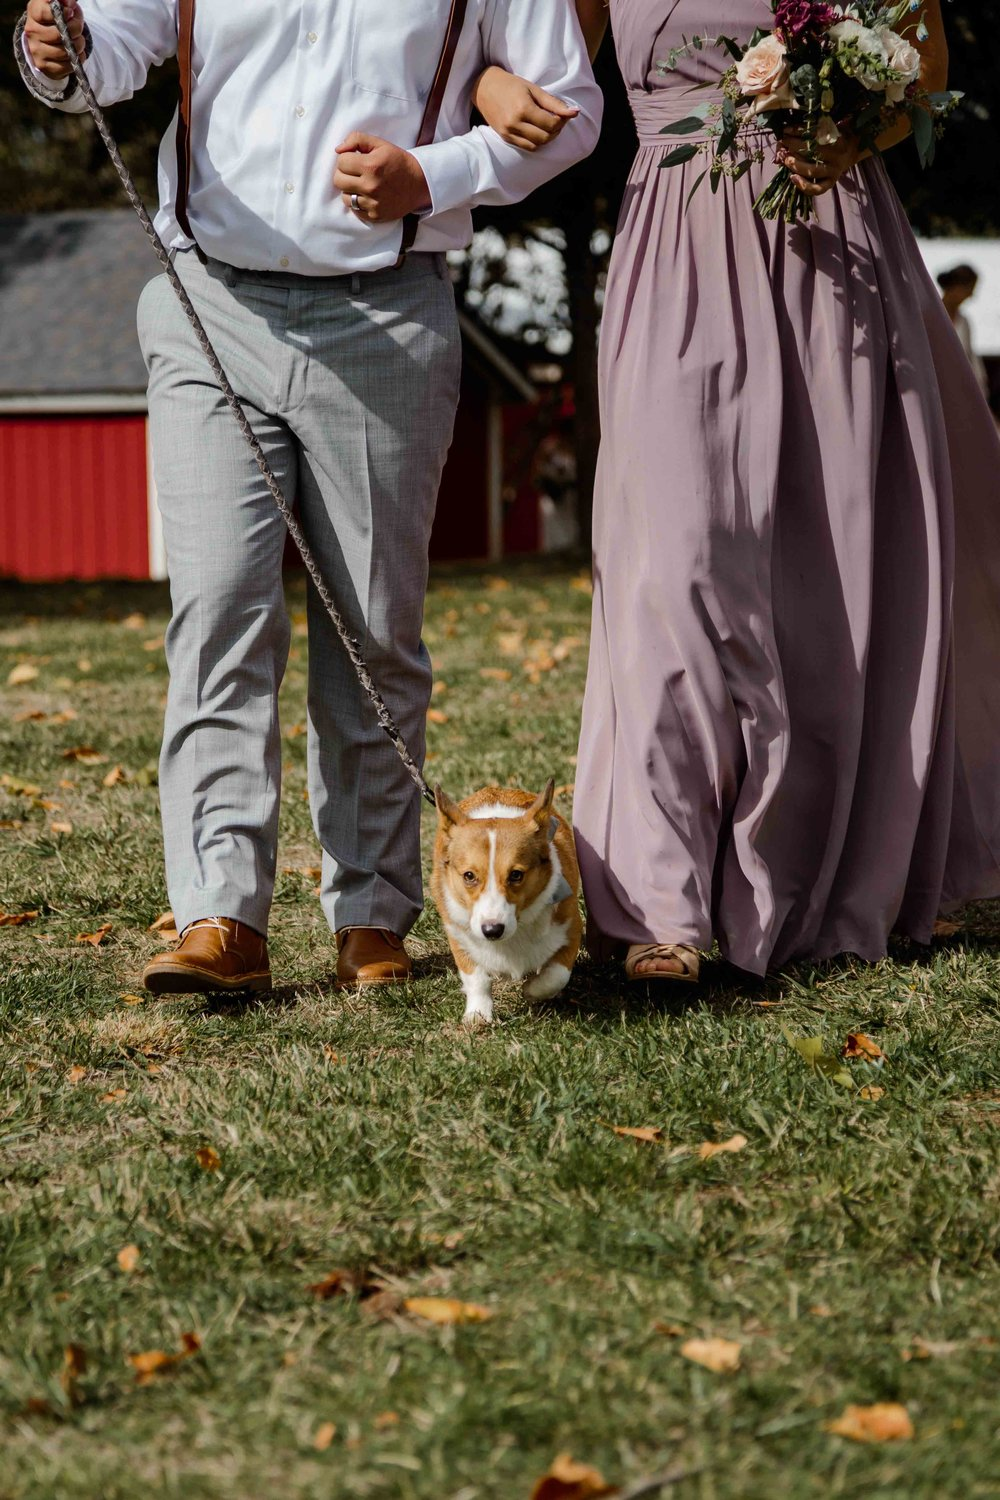 vineyard wedding summer fall oregon corgi rustic wedding-55.jpg